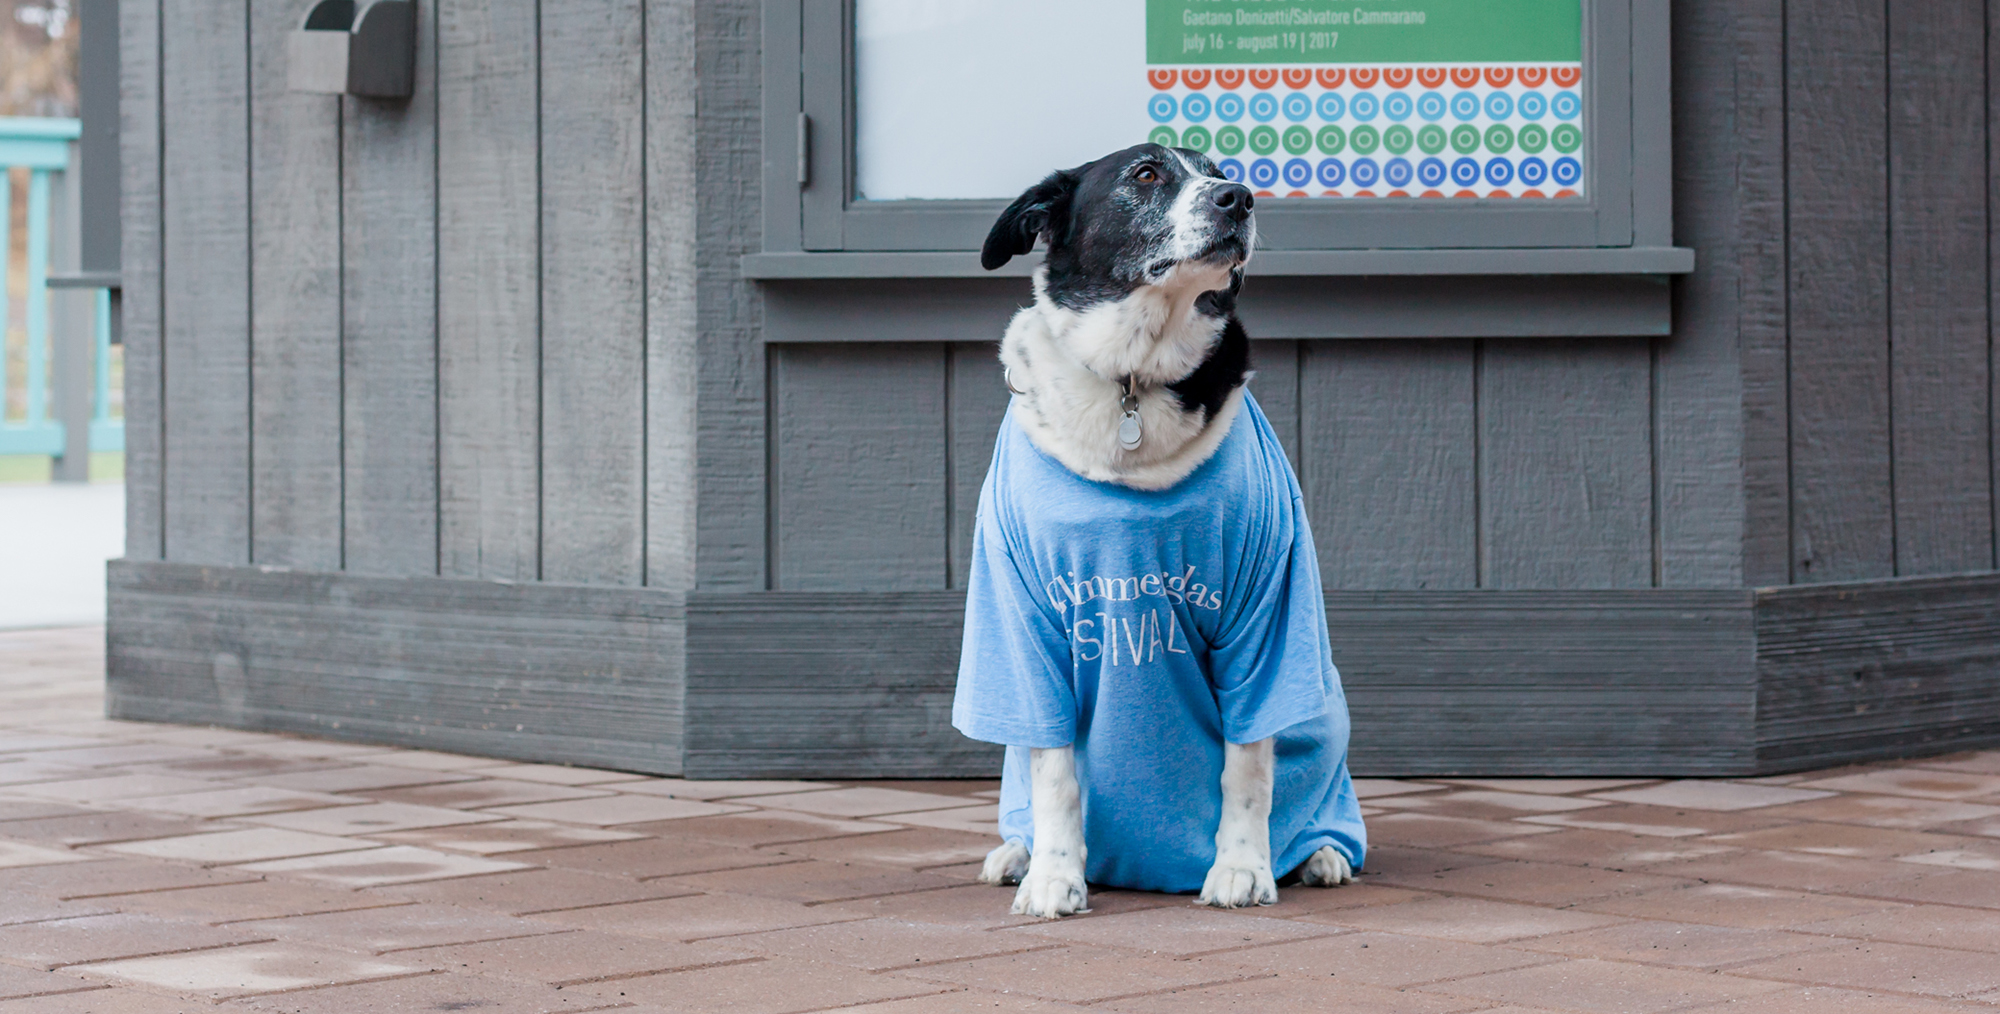 Black and white dog sits wearing a blue Glimmerglass shirt